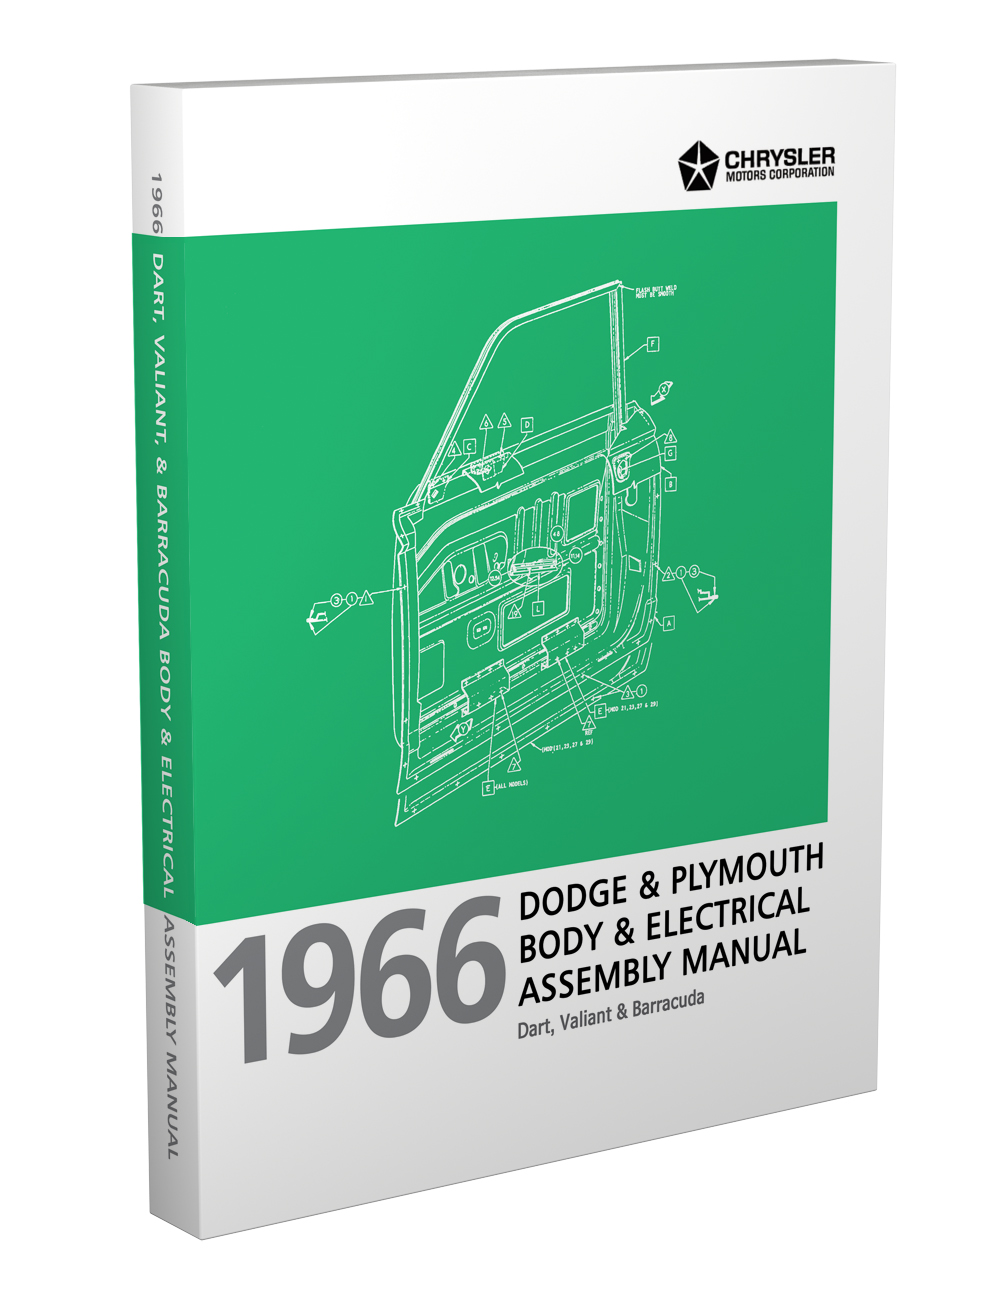 1966 Barracuda, Valiant and Dart Electrical and Body Assembly Manual Reprint